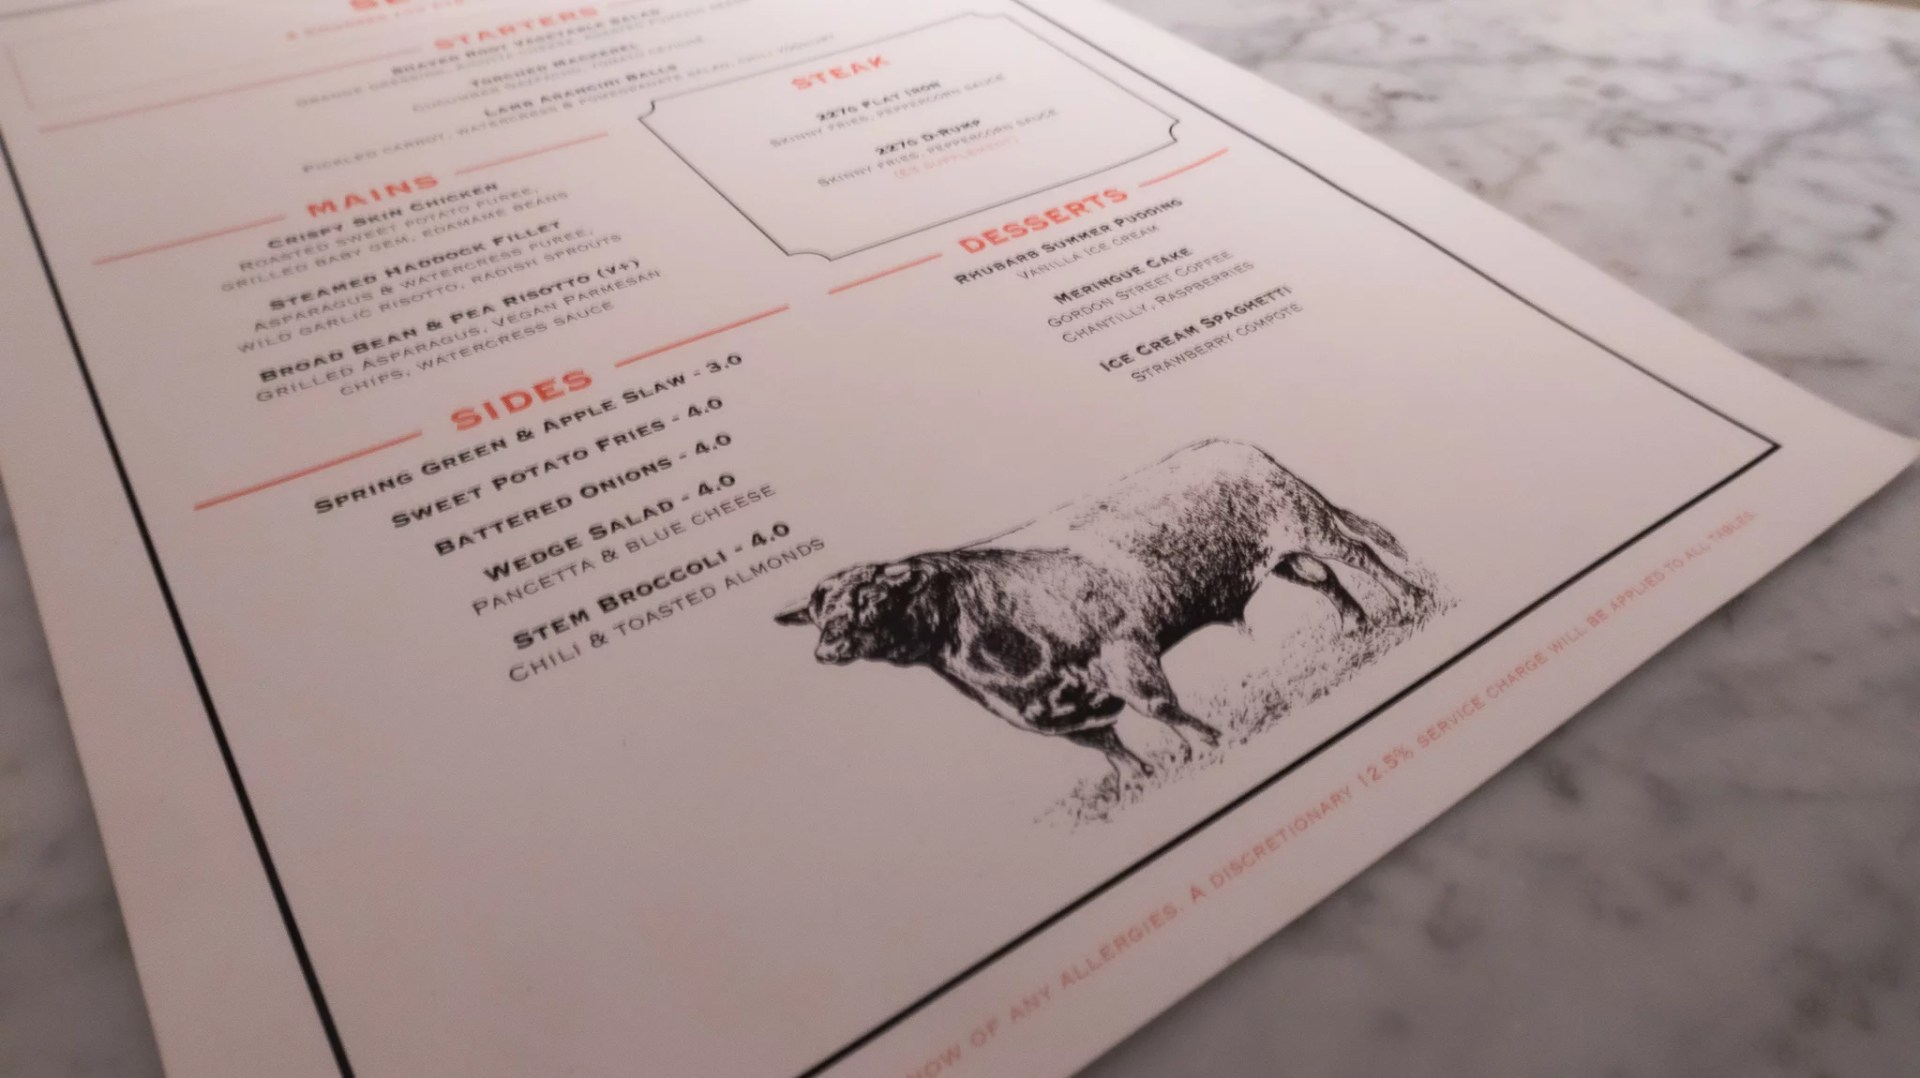 Alston Bar and Beef menu